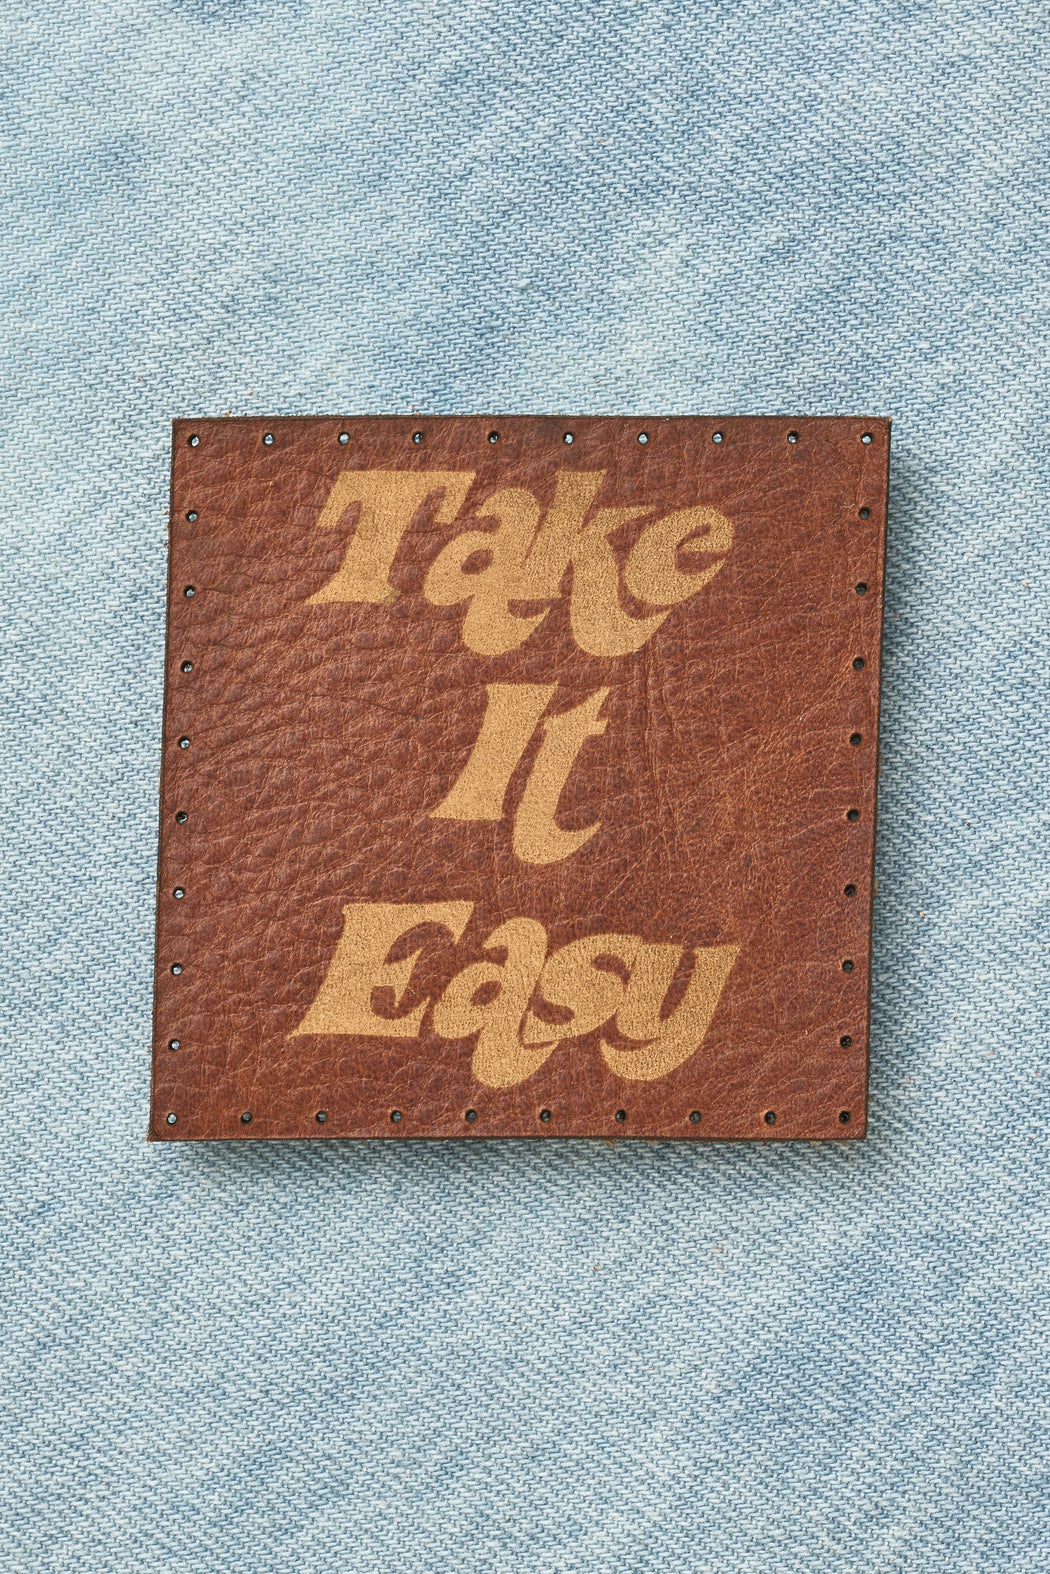 Take It Easy Leather Patch